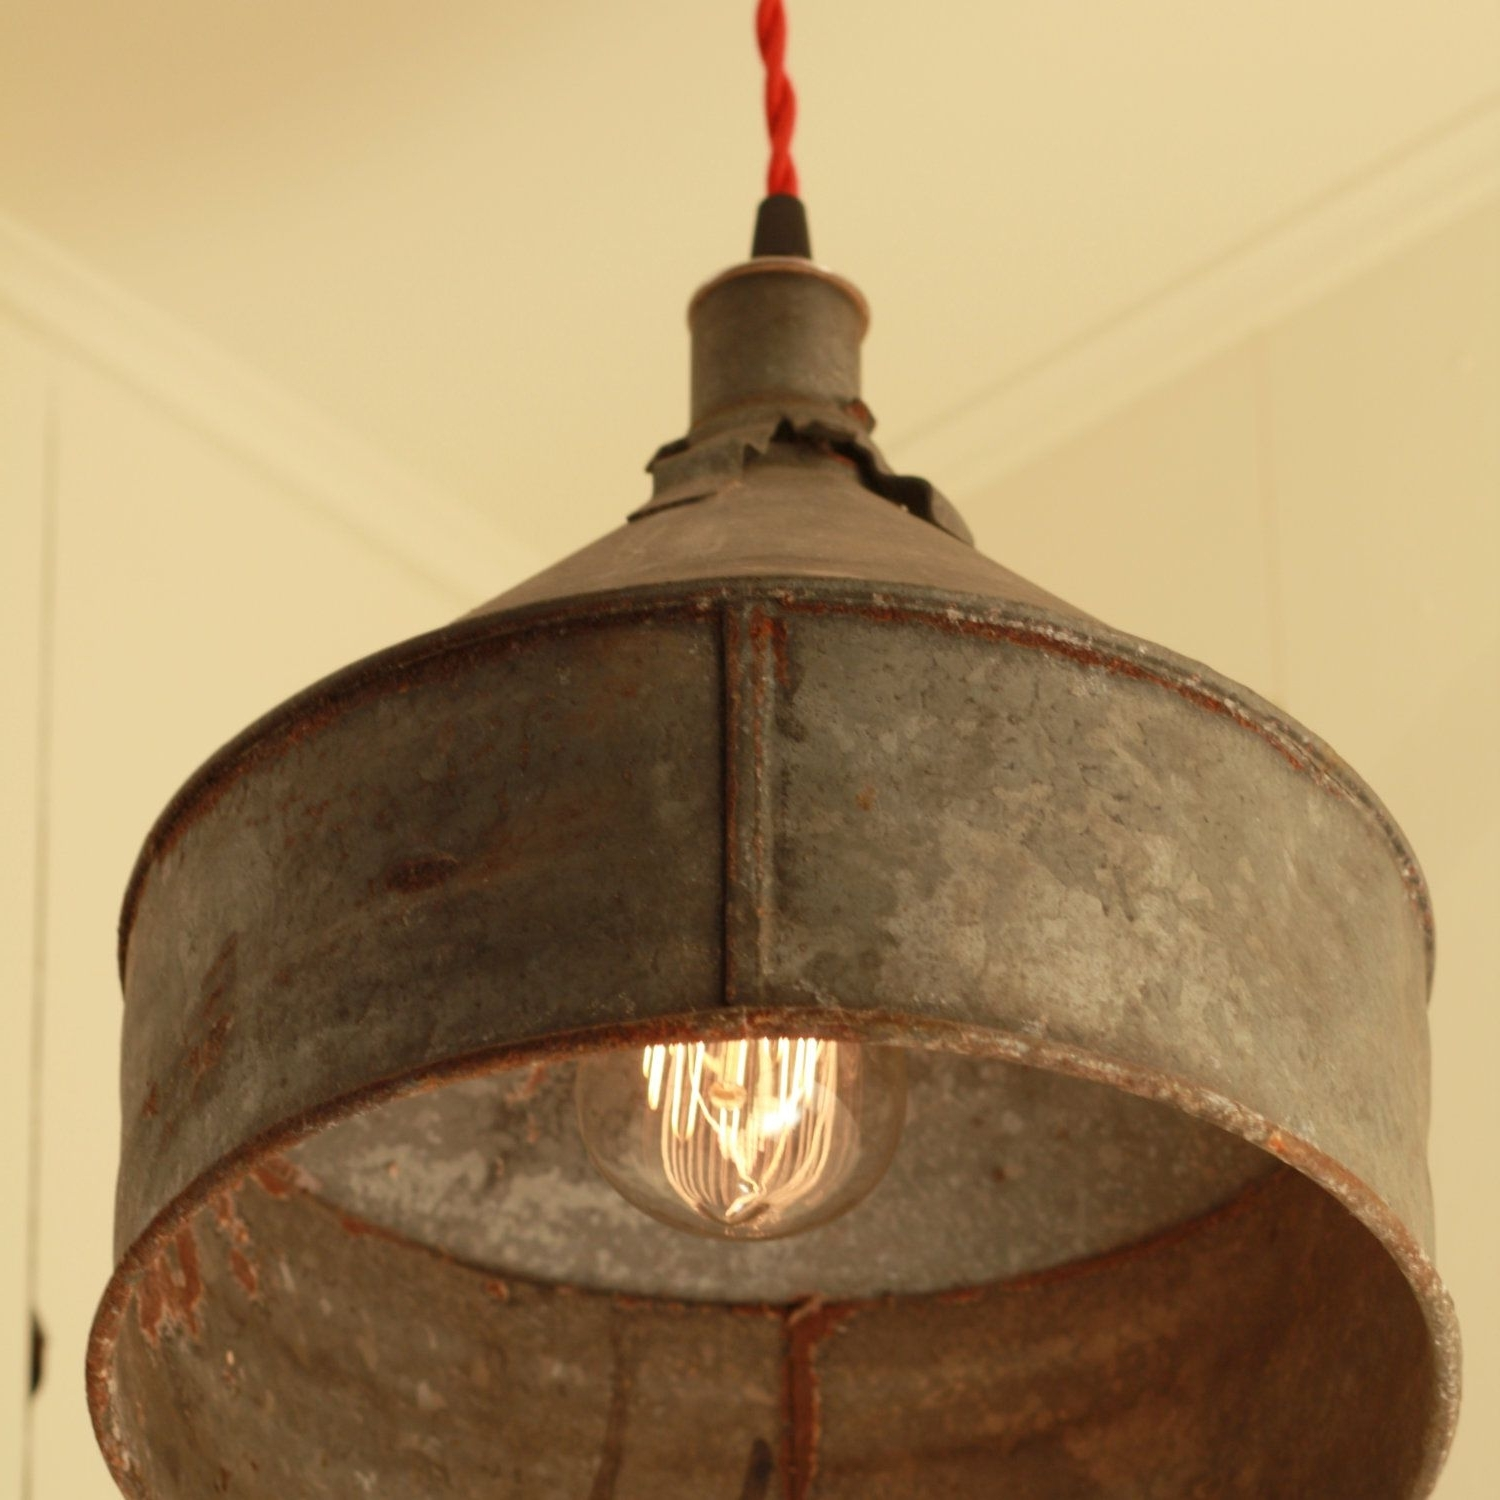 Reserved For Jacquidowd – Rustic Lighting With Vintage Rustic Funnel Within Trendy Vintage And Rustic Outdoor Lighting (View 5 of 20)